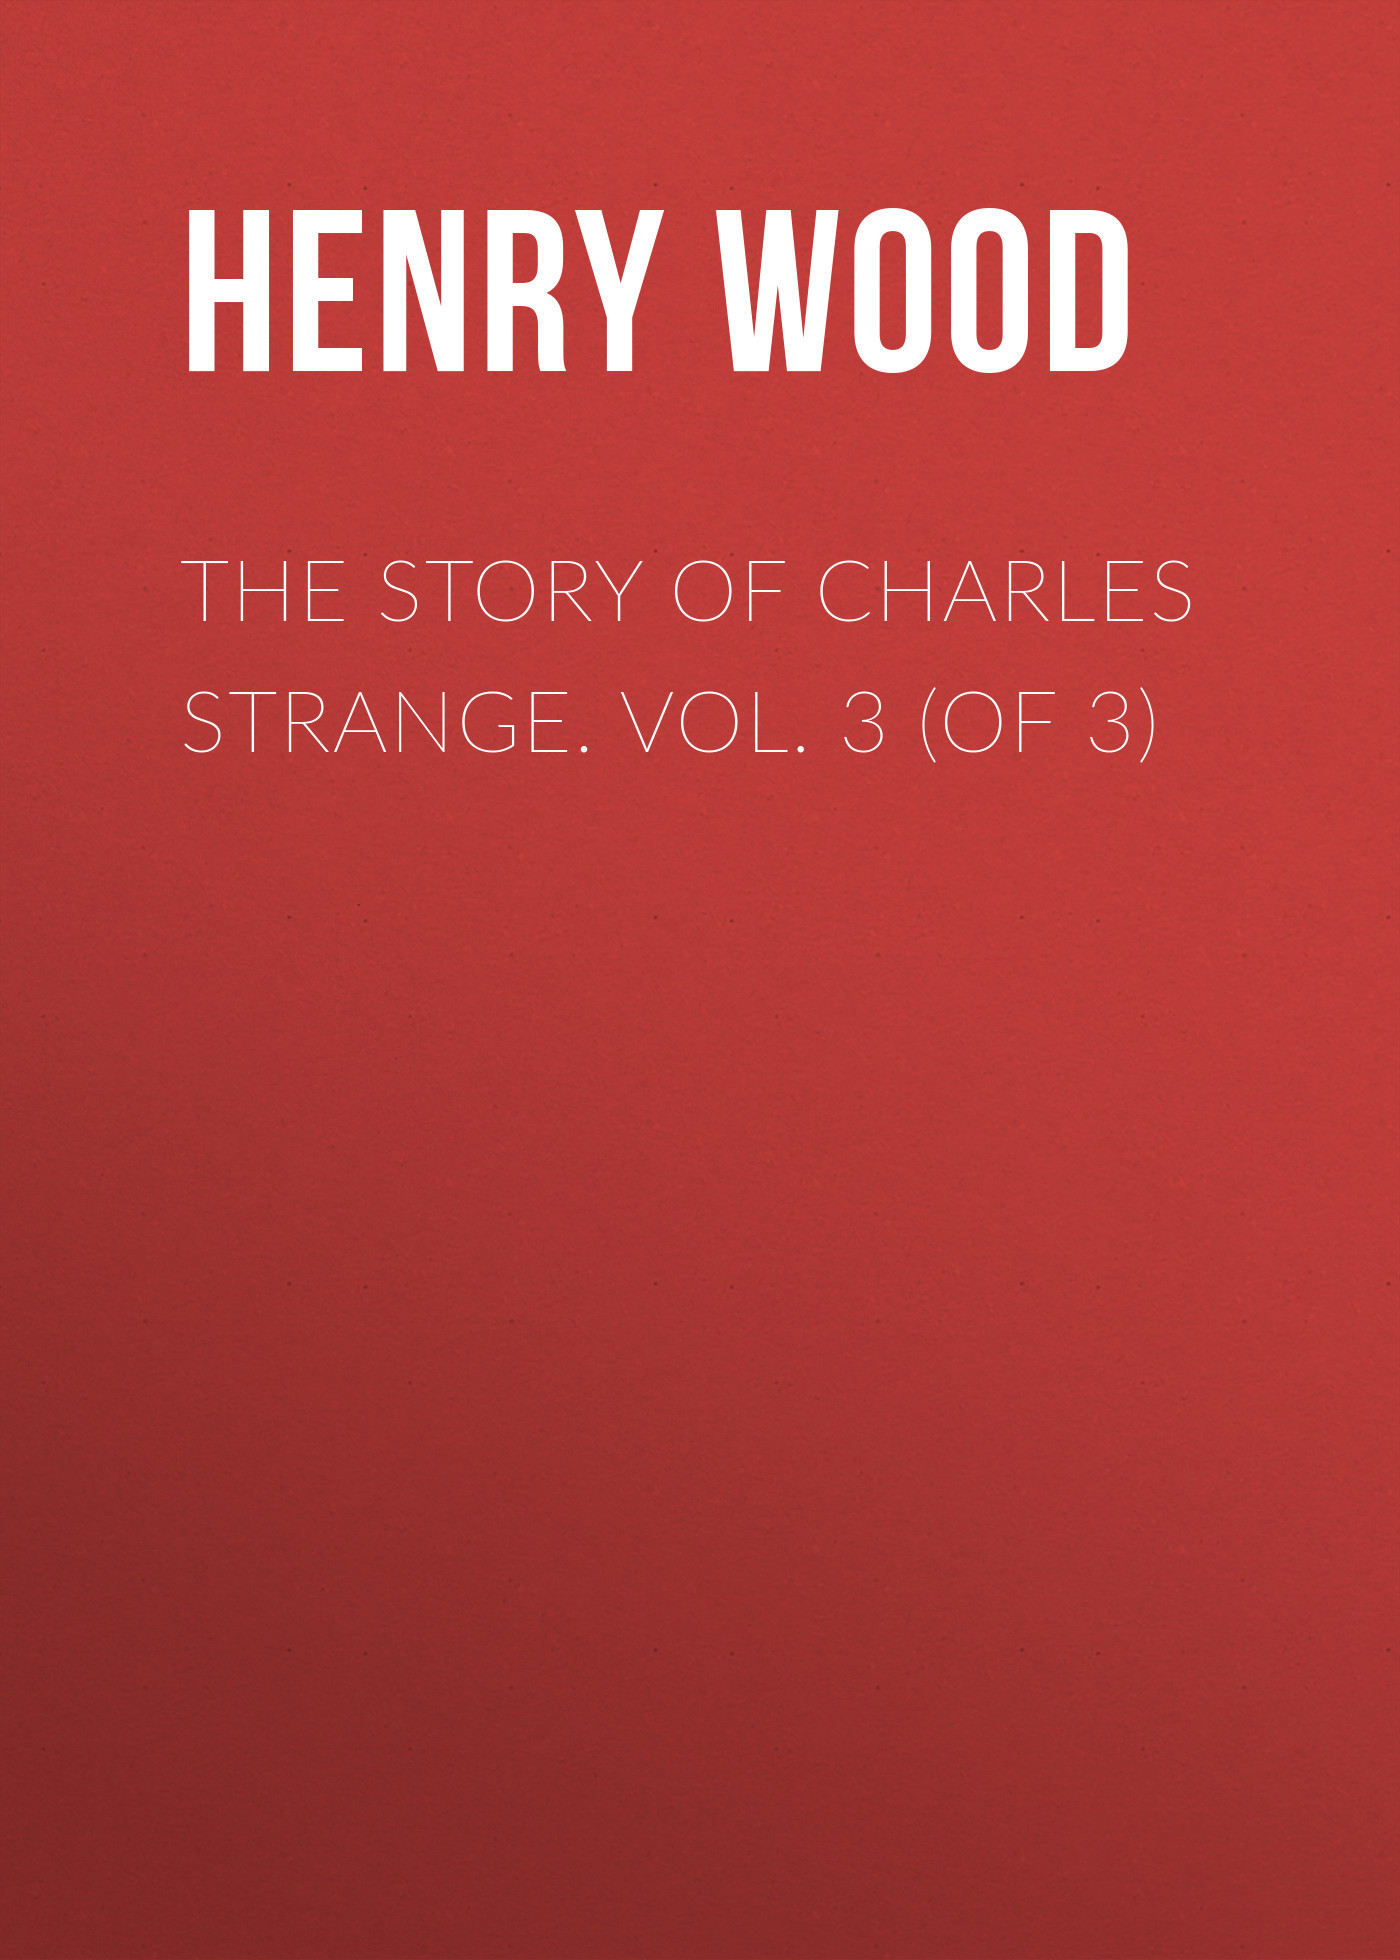 Henry Wood The Story of Charles Strange. Vol. 3 (of 3) henry wood mildred arkell vol 3 of 3